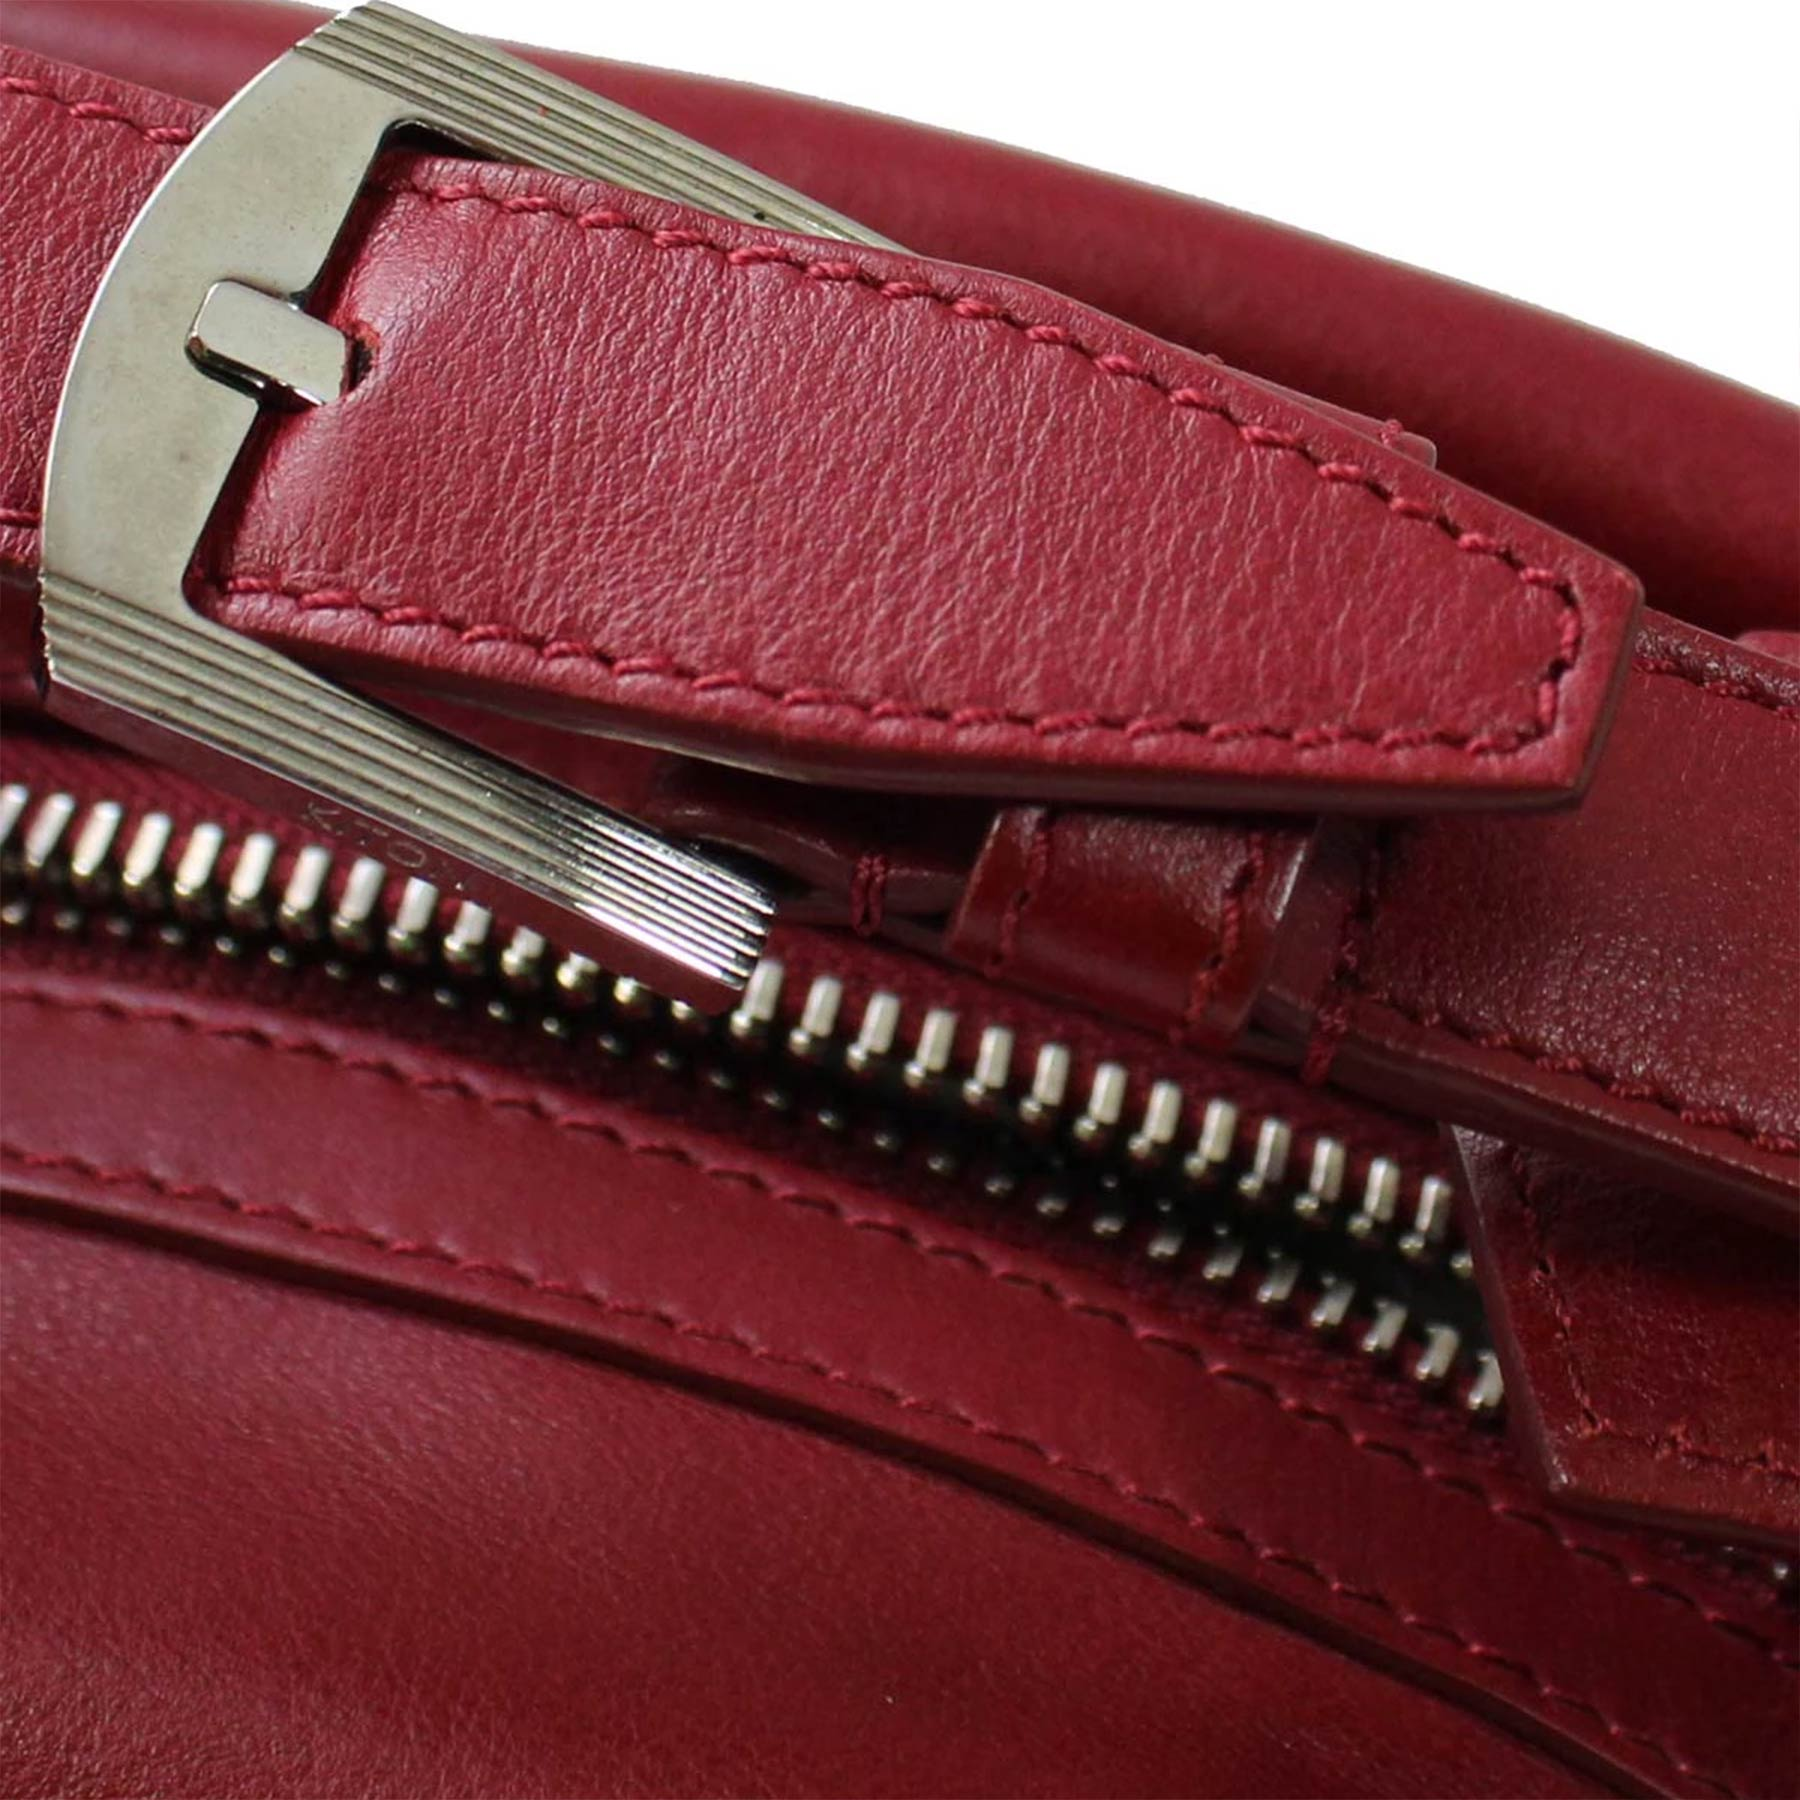 Kiton Purse Red Leather Handbag